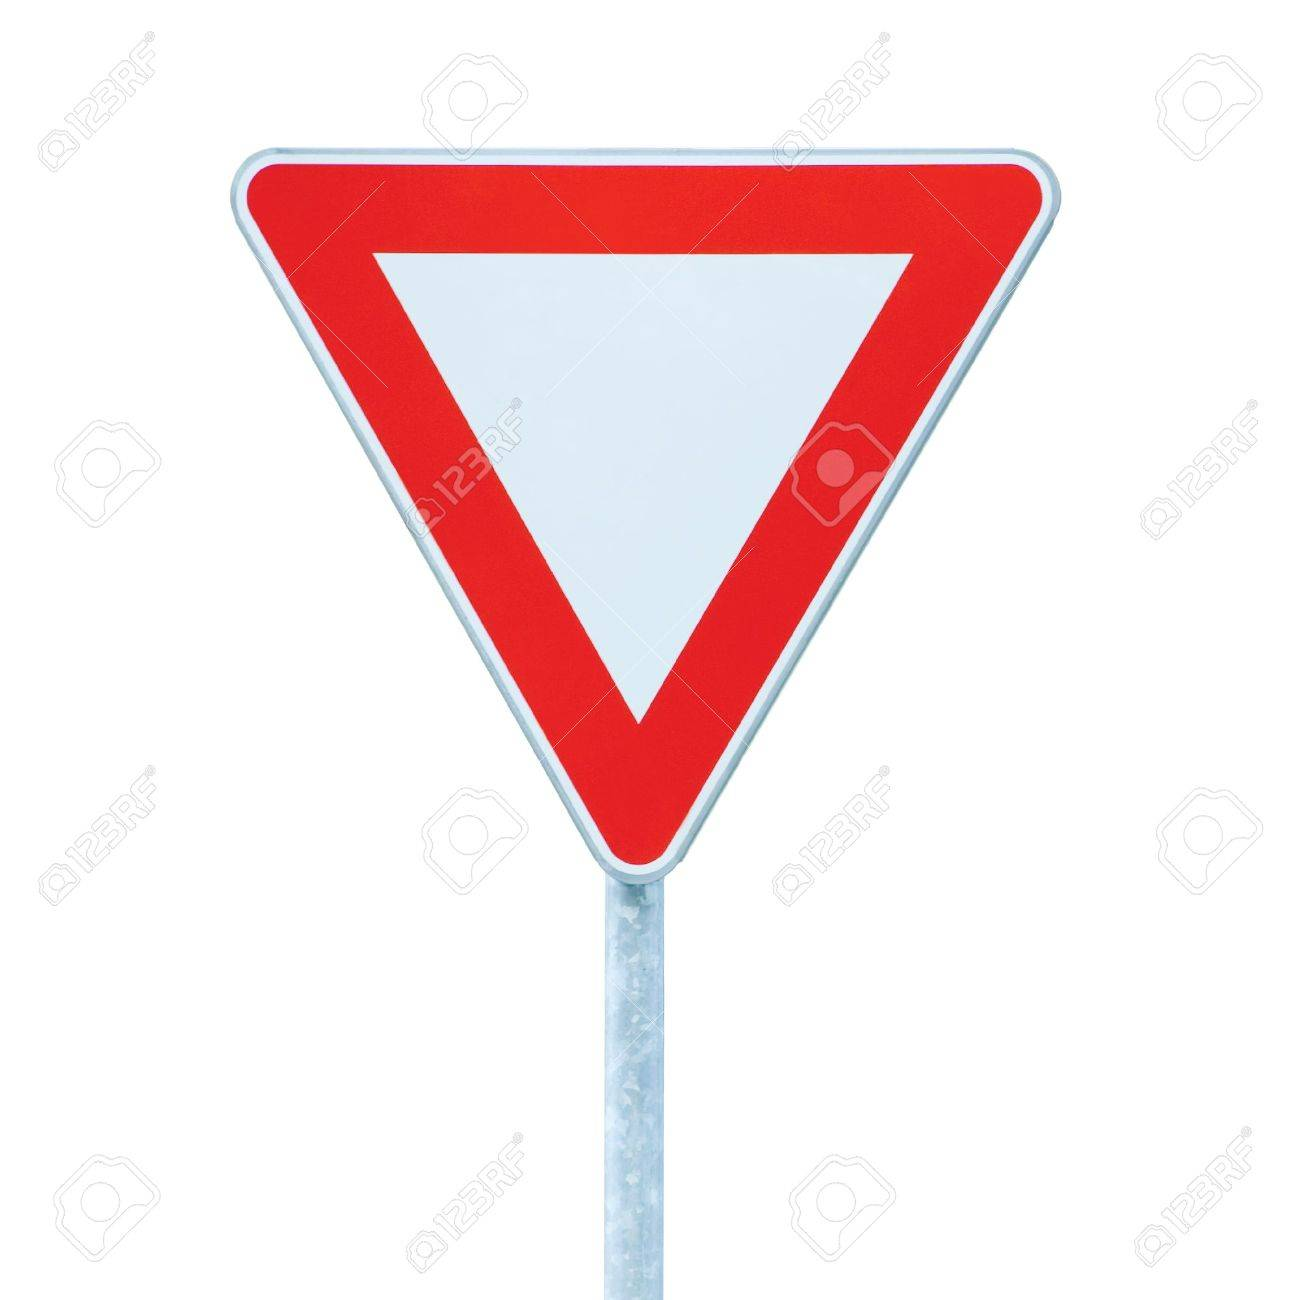 Give way priority yield road traffic roadsign sign, isolated Stock Photo - 6809858